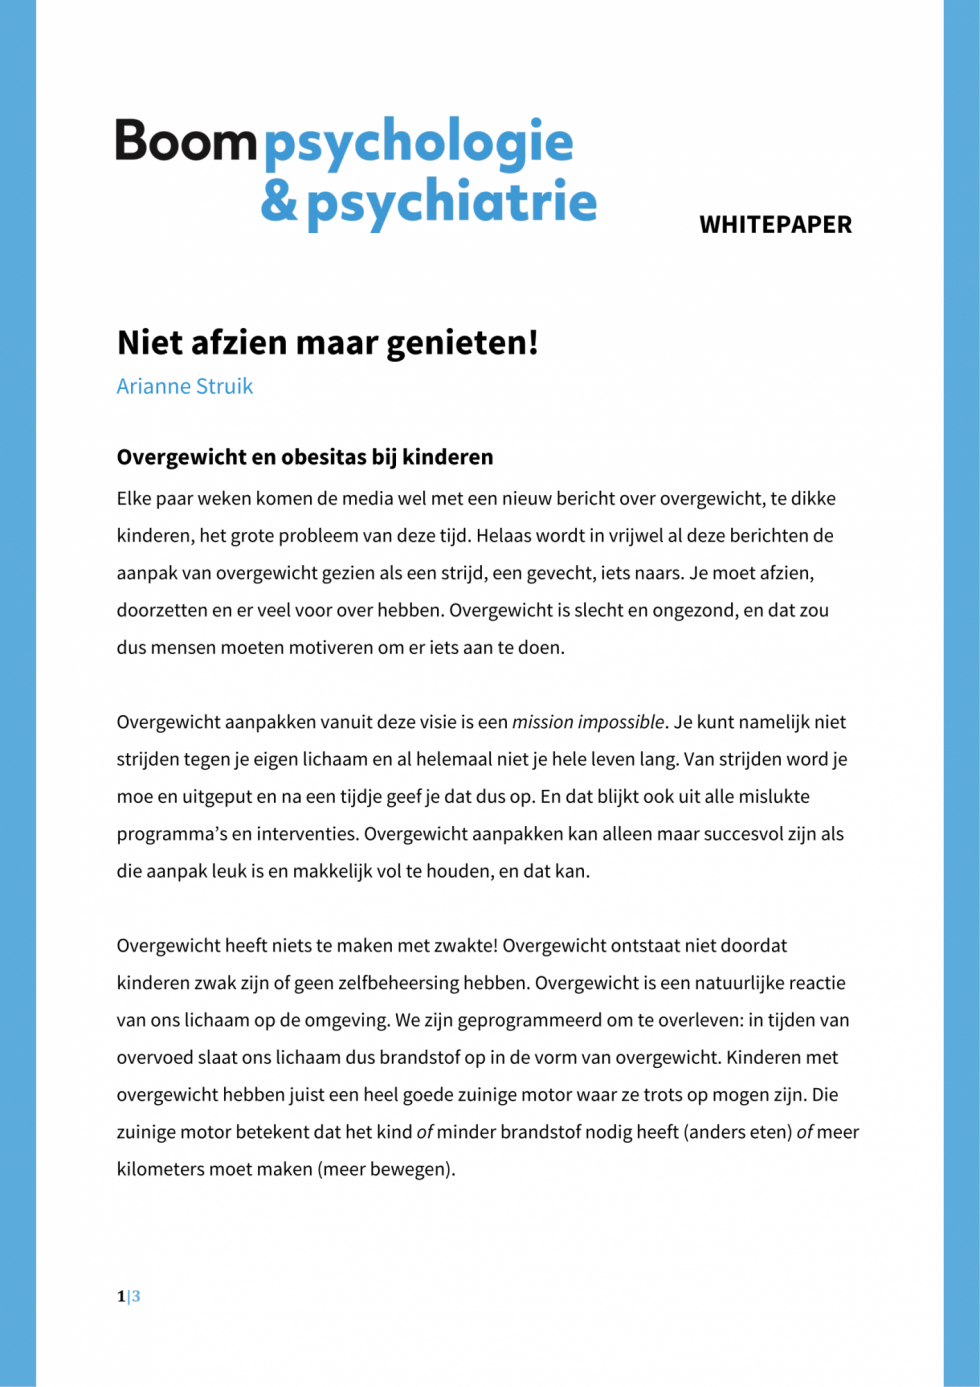 Download het whitepaper